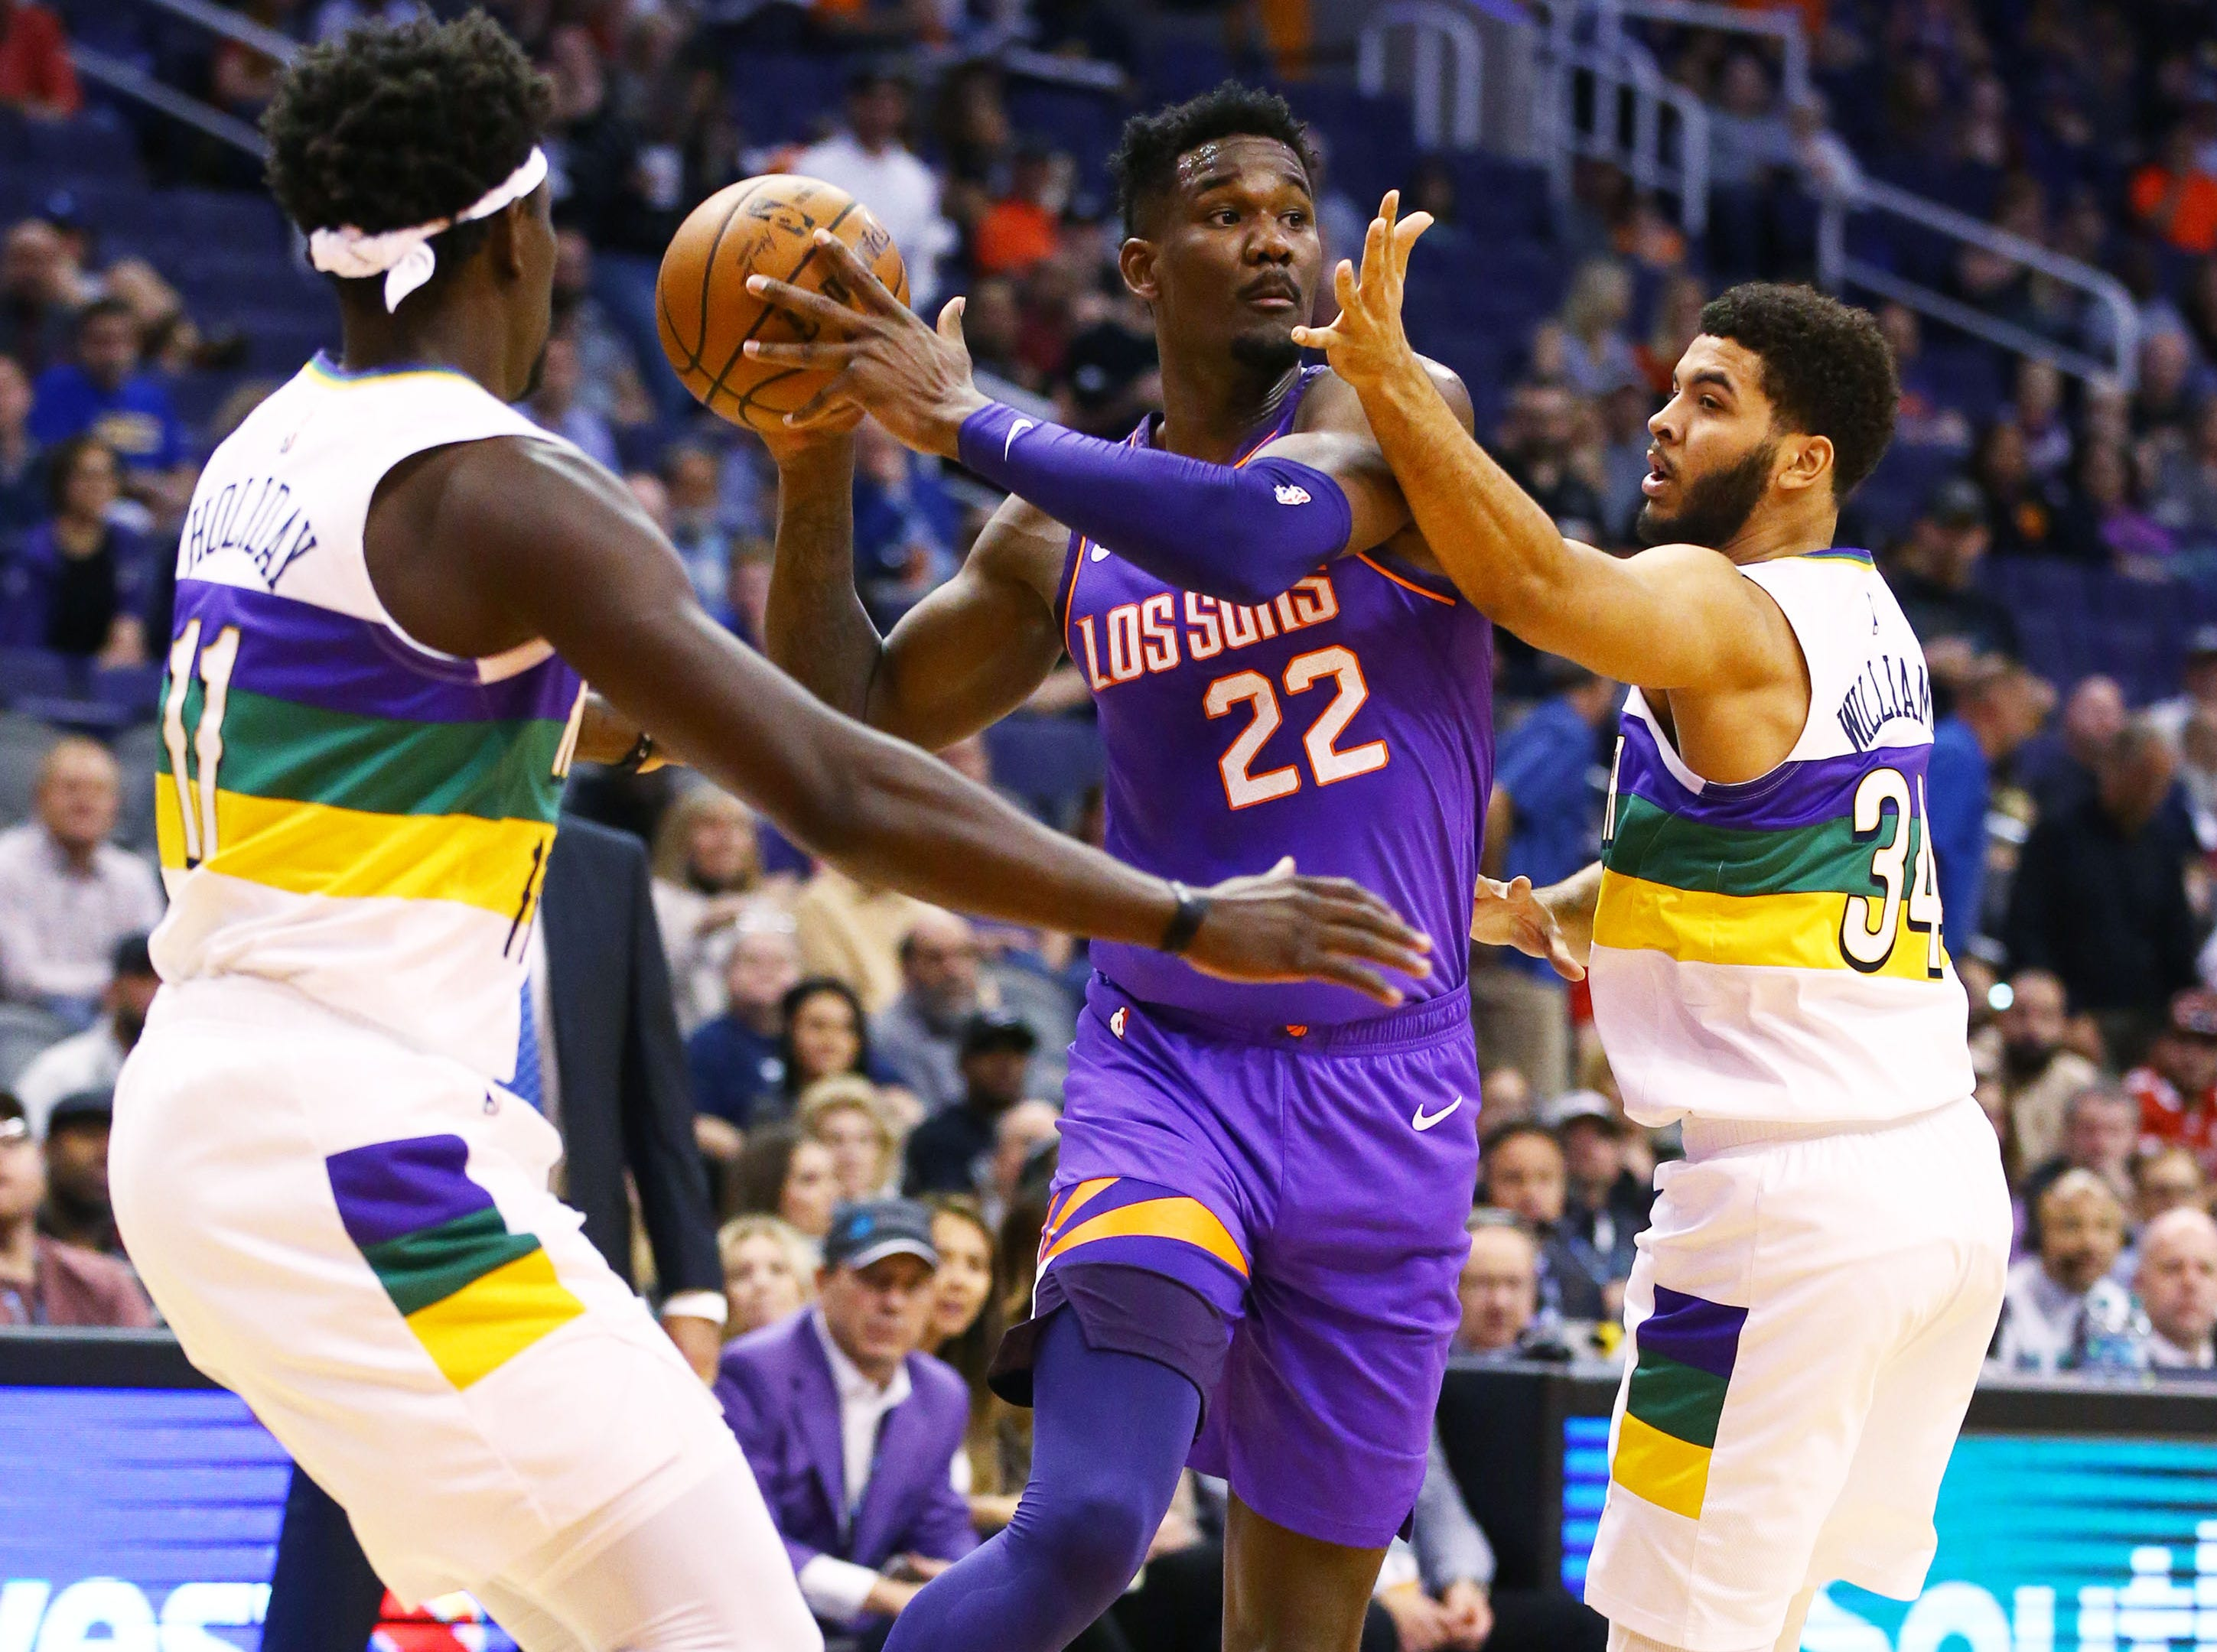 Phoenix Suns center Deandre Ayton is double teammed by the New Orleans Pelicans in the first half on Mar. 1, 2019, at Talking Stick Resort Arena in Phoenix, Ariz.